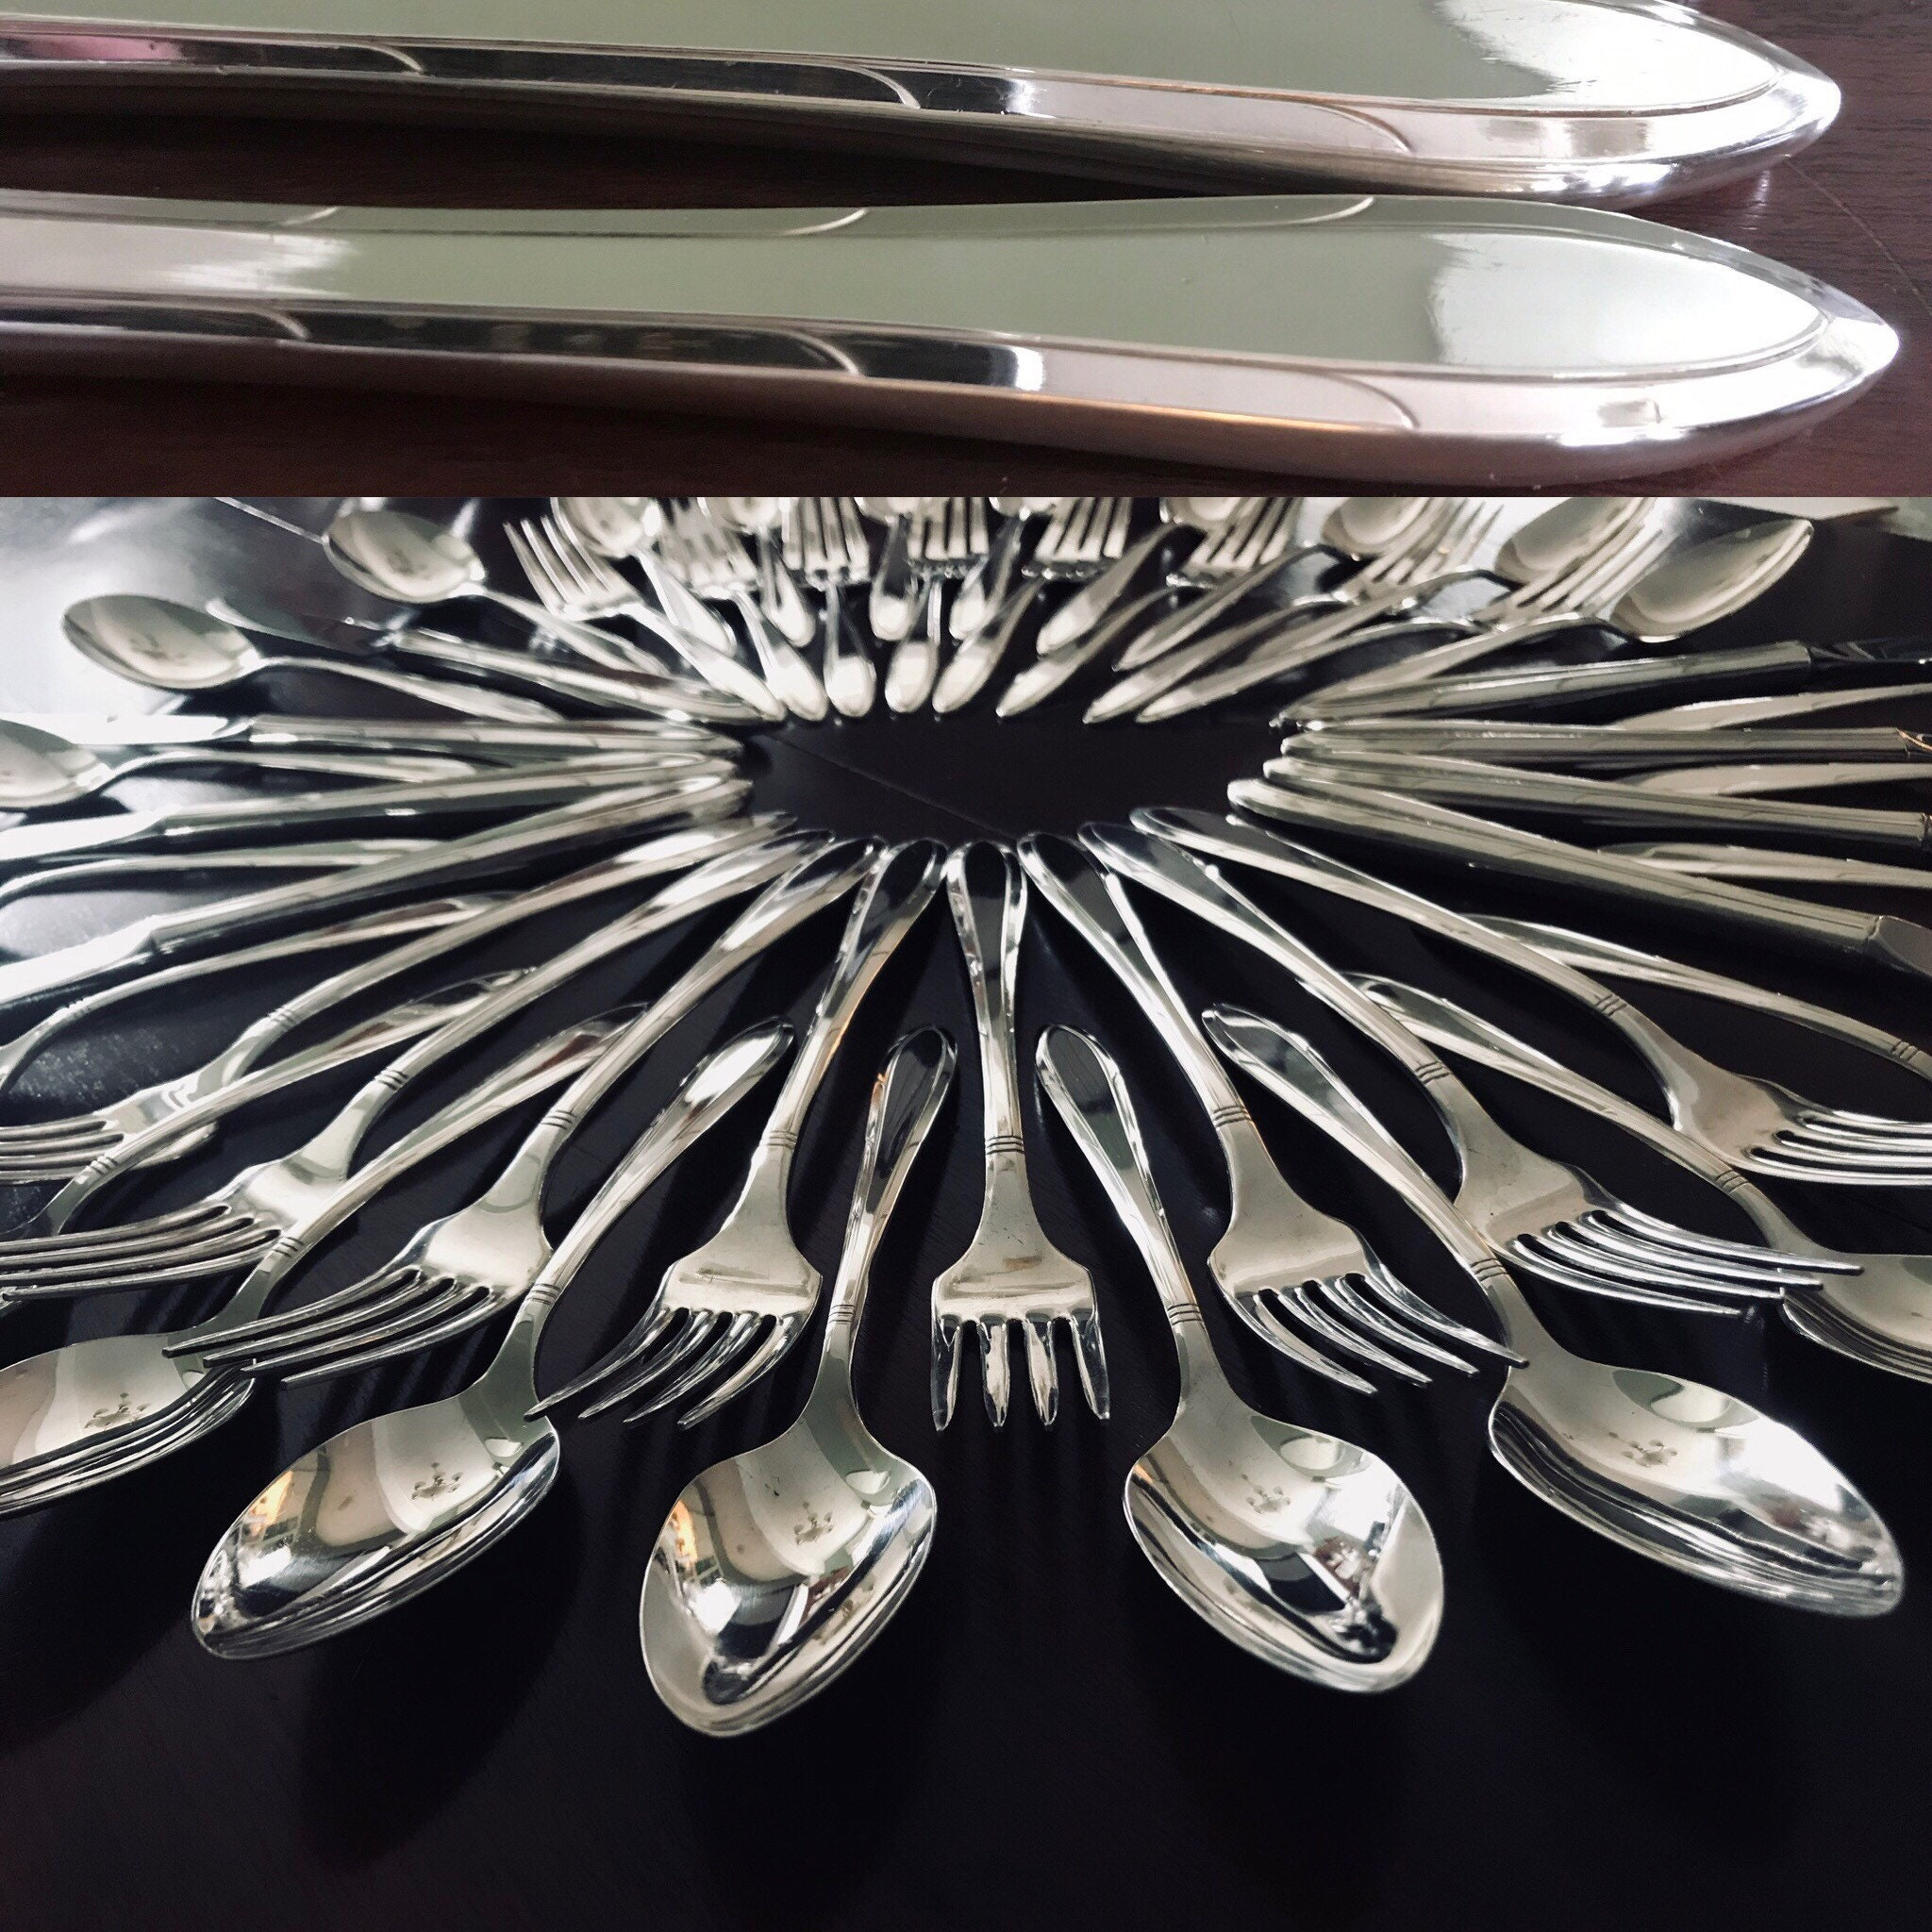 Silverware Wedding Gifts: Vintage Flatware Set With Silverware Chest, Service For 8